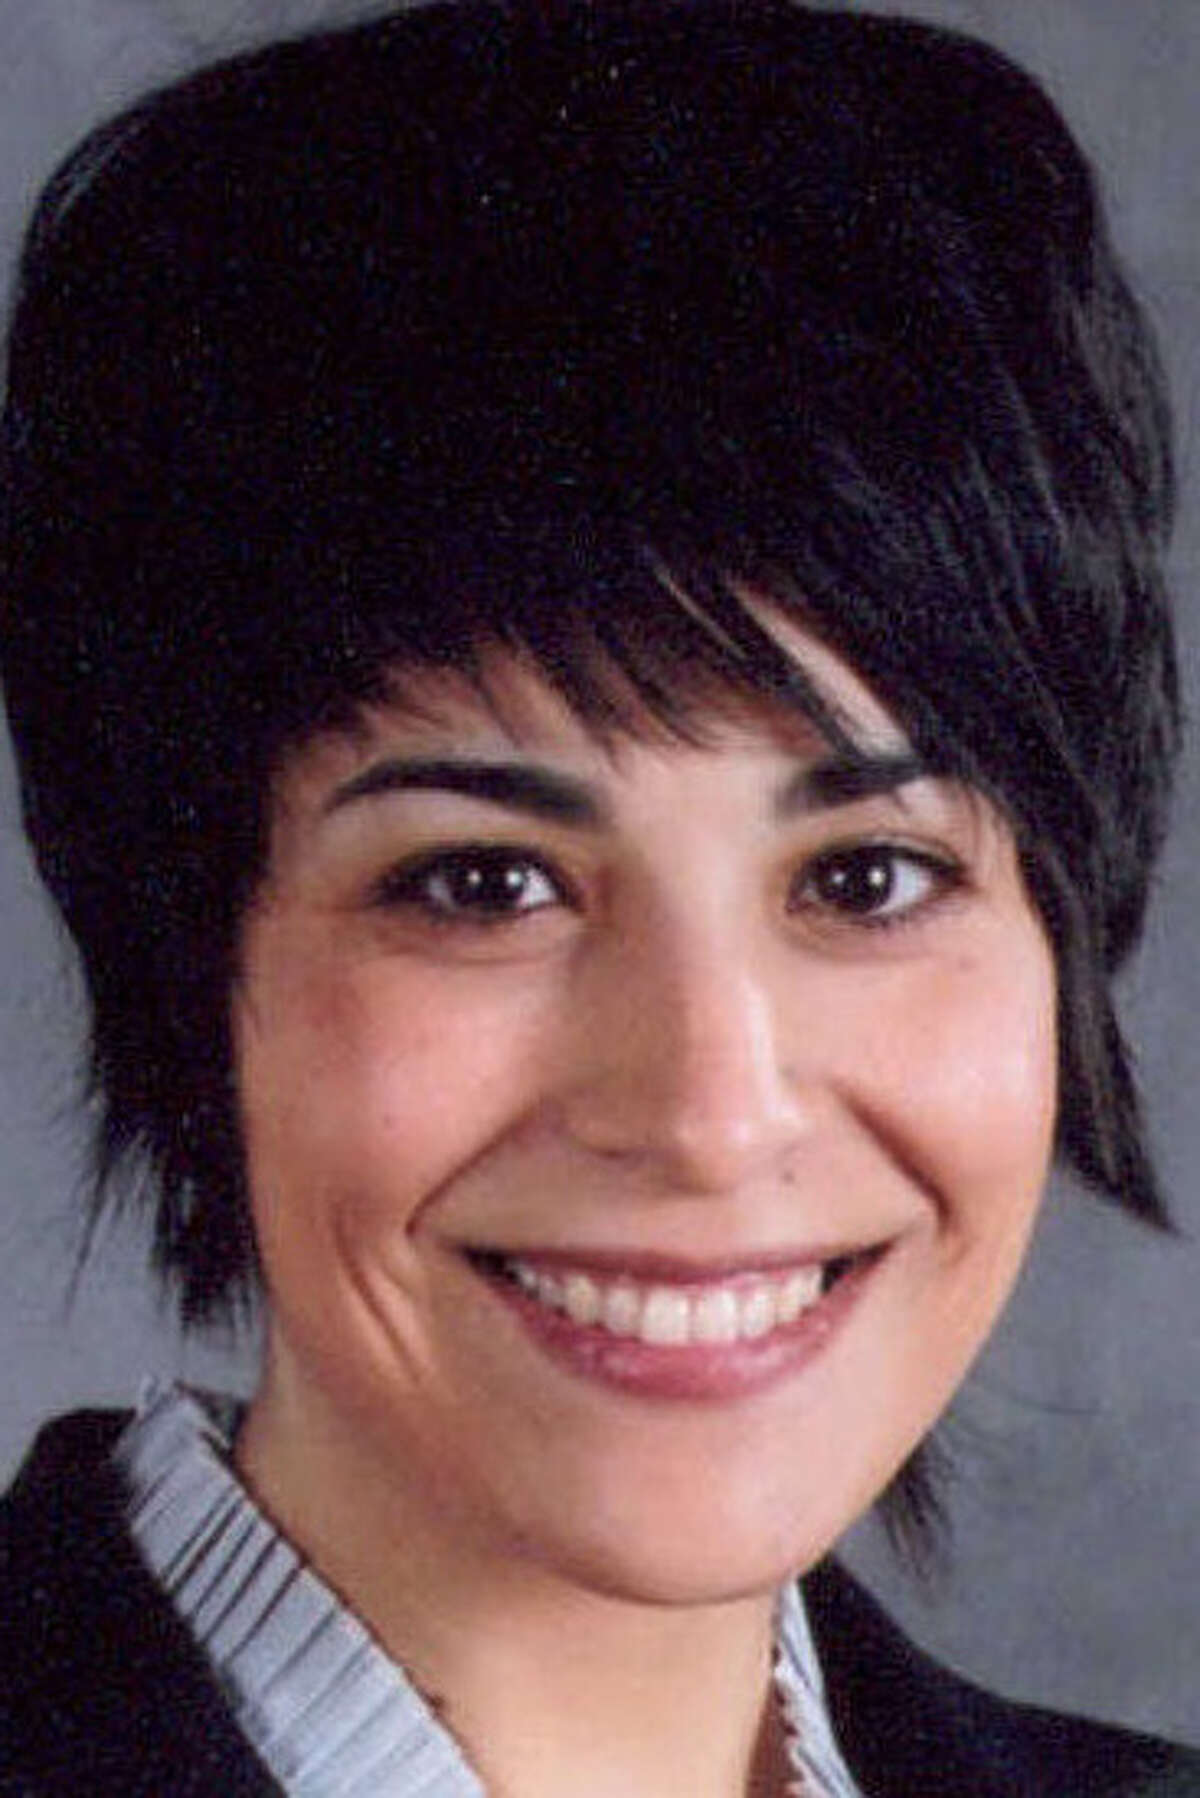 Eliza Alvarado is a public voices fellow with the OpEd Project at Texas Woman's University.